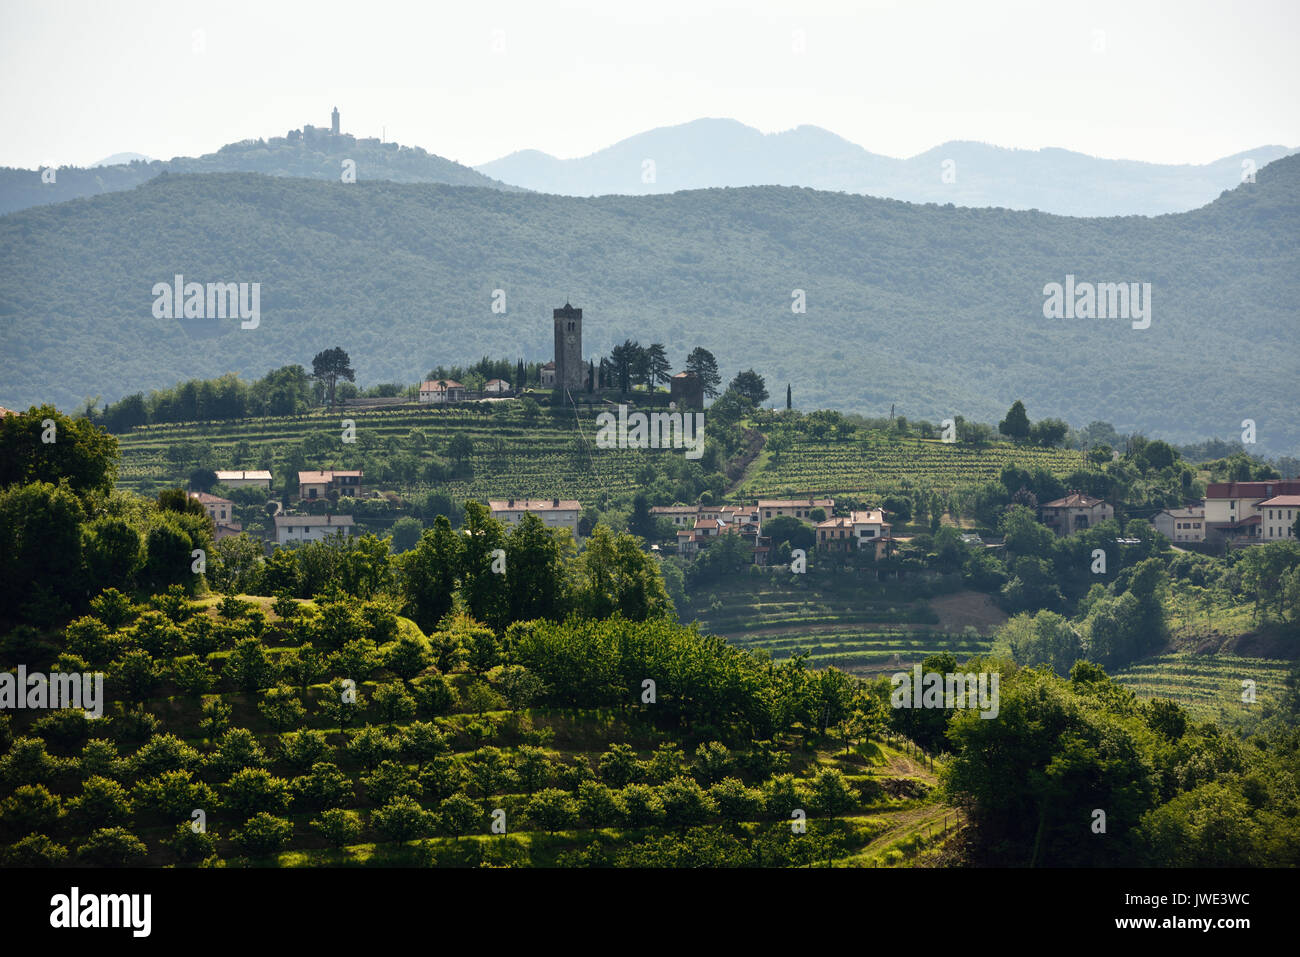 Church of the Holy Cross in Kojsko with vineyards and cherry orchards and Sveta Goro Holy Mountain with Basilica of the Assumption of Mary Slovenia - Stock Image